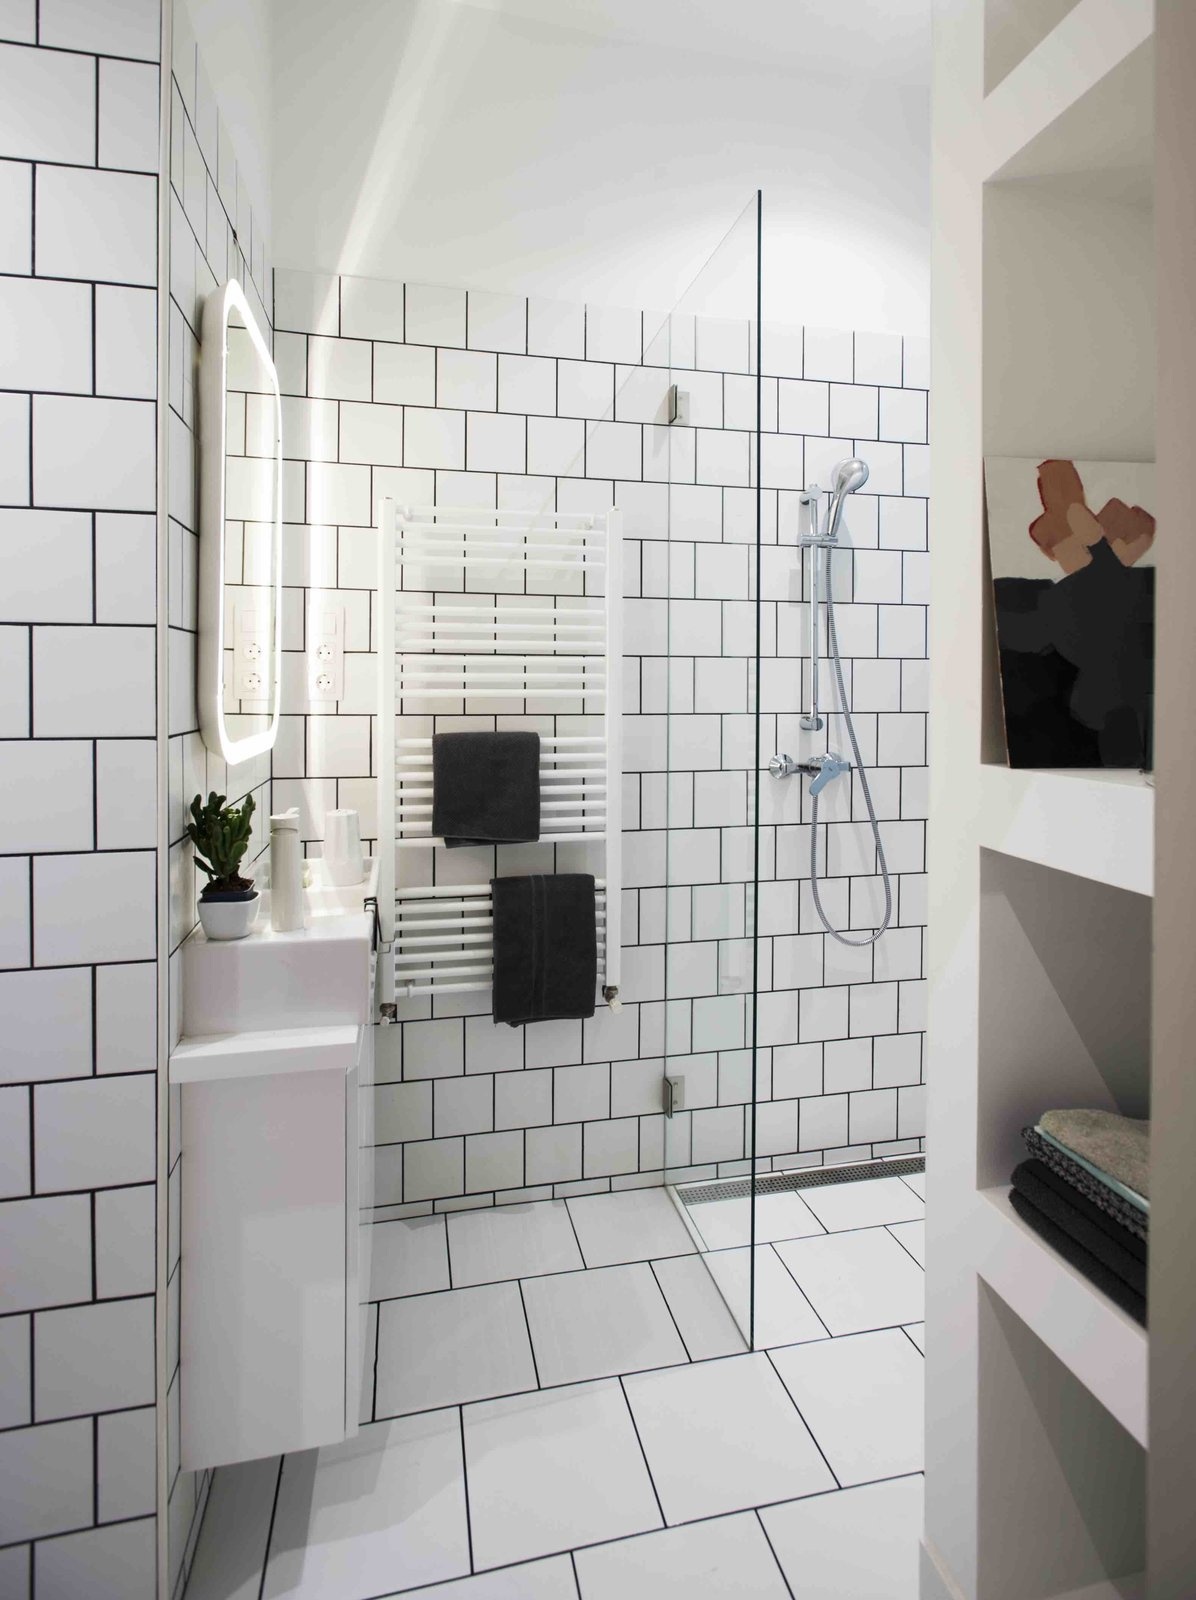 Bath Room, Open Shower, and Wall Lighting  Photo 5 of 11 in 3 Smart Storage Systems Maximize Space in a Tiny Studio Apartment in Budapest